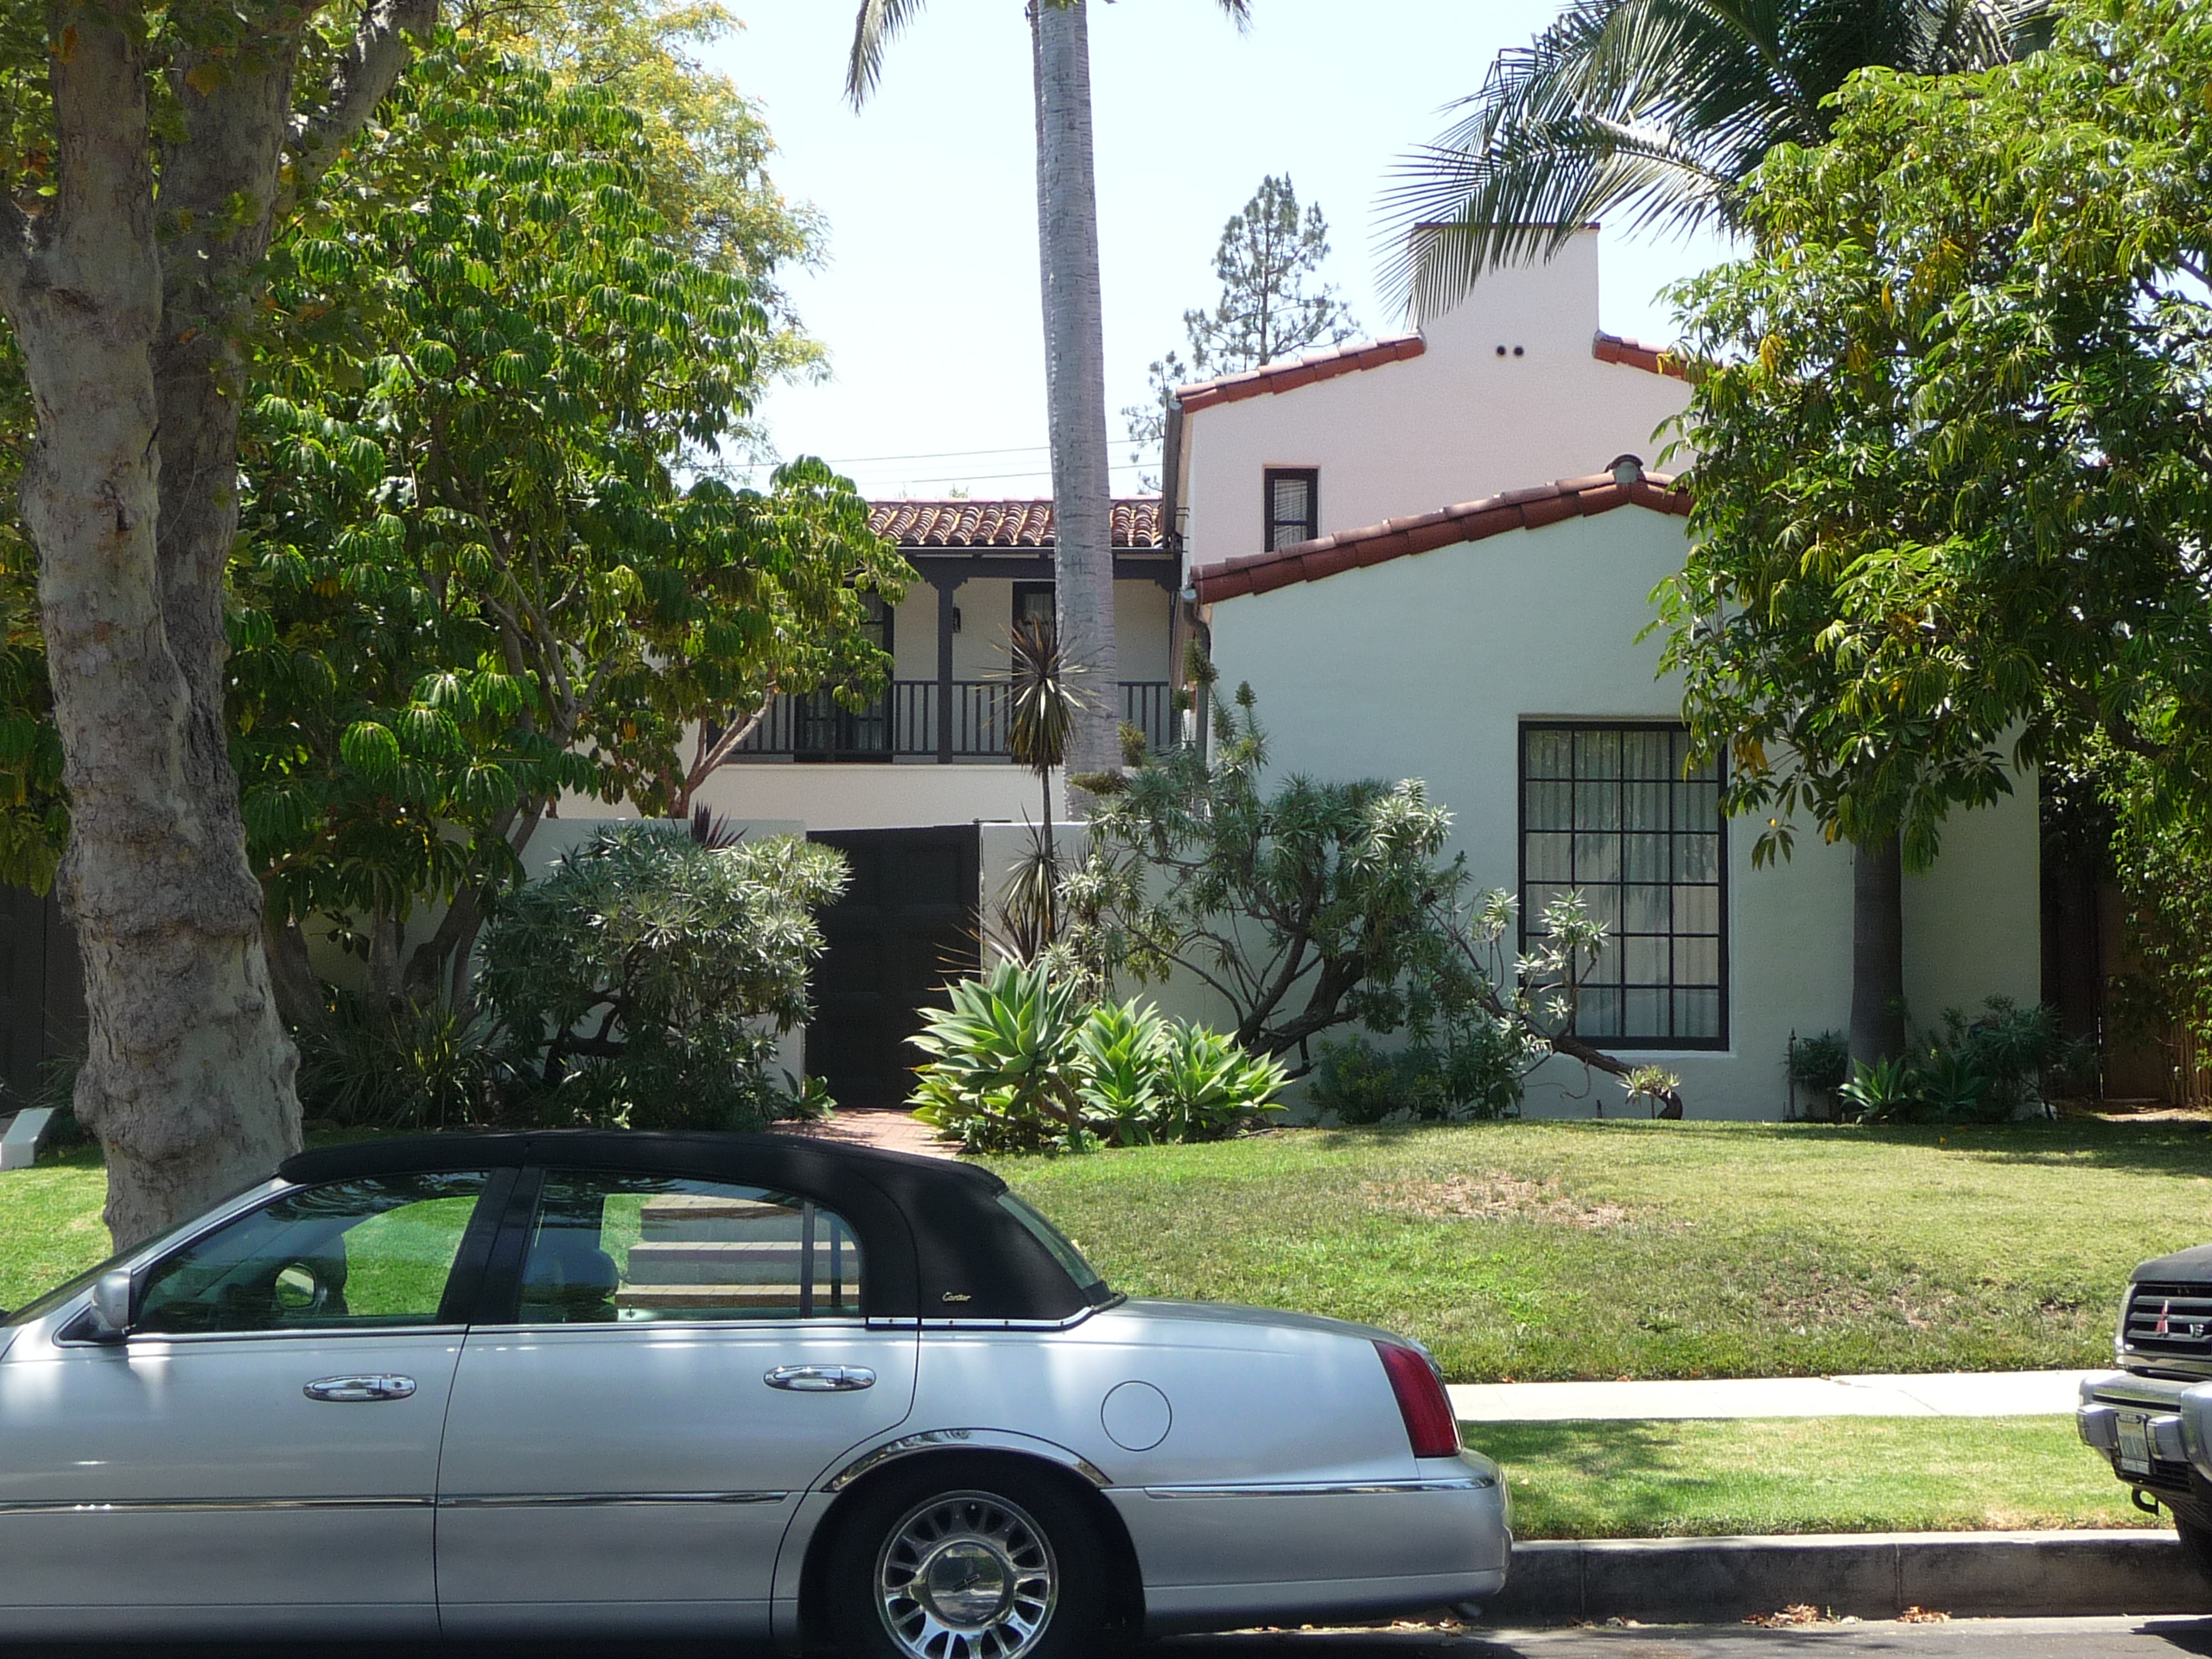 457 N MANSFIELD AVE - PHOTO